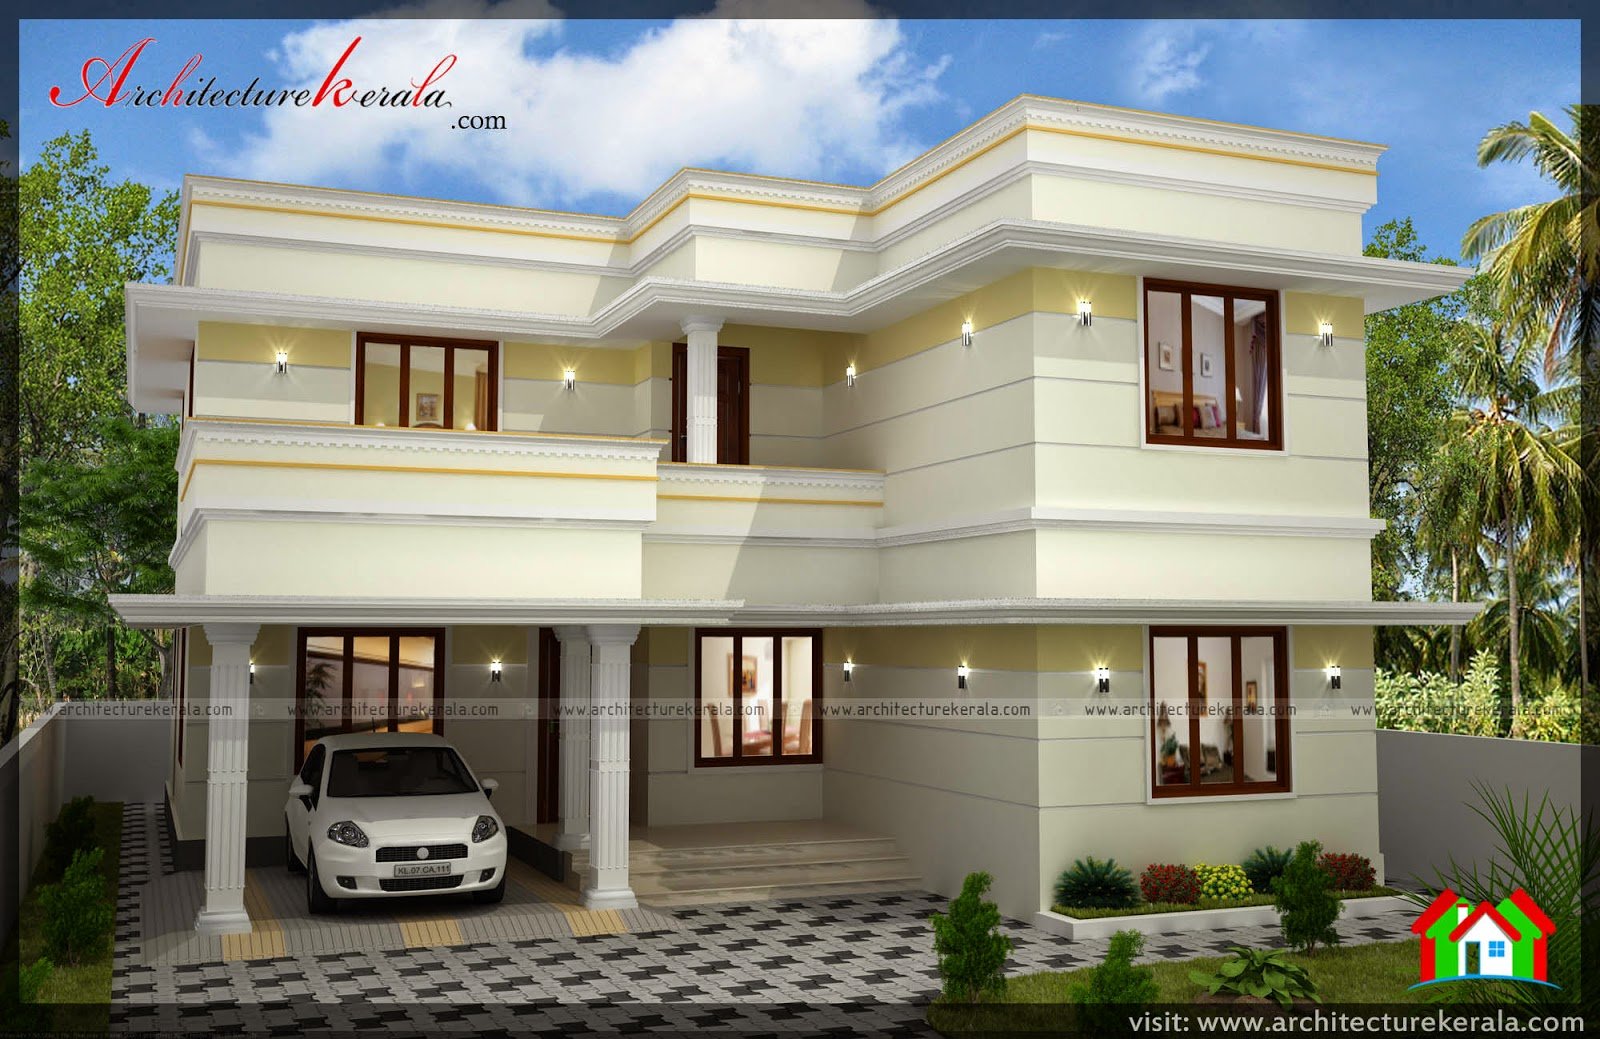 Three bedroom two storey house plan architecture kerala for Free double storey house plans